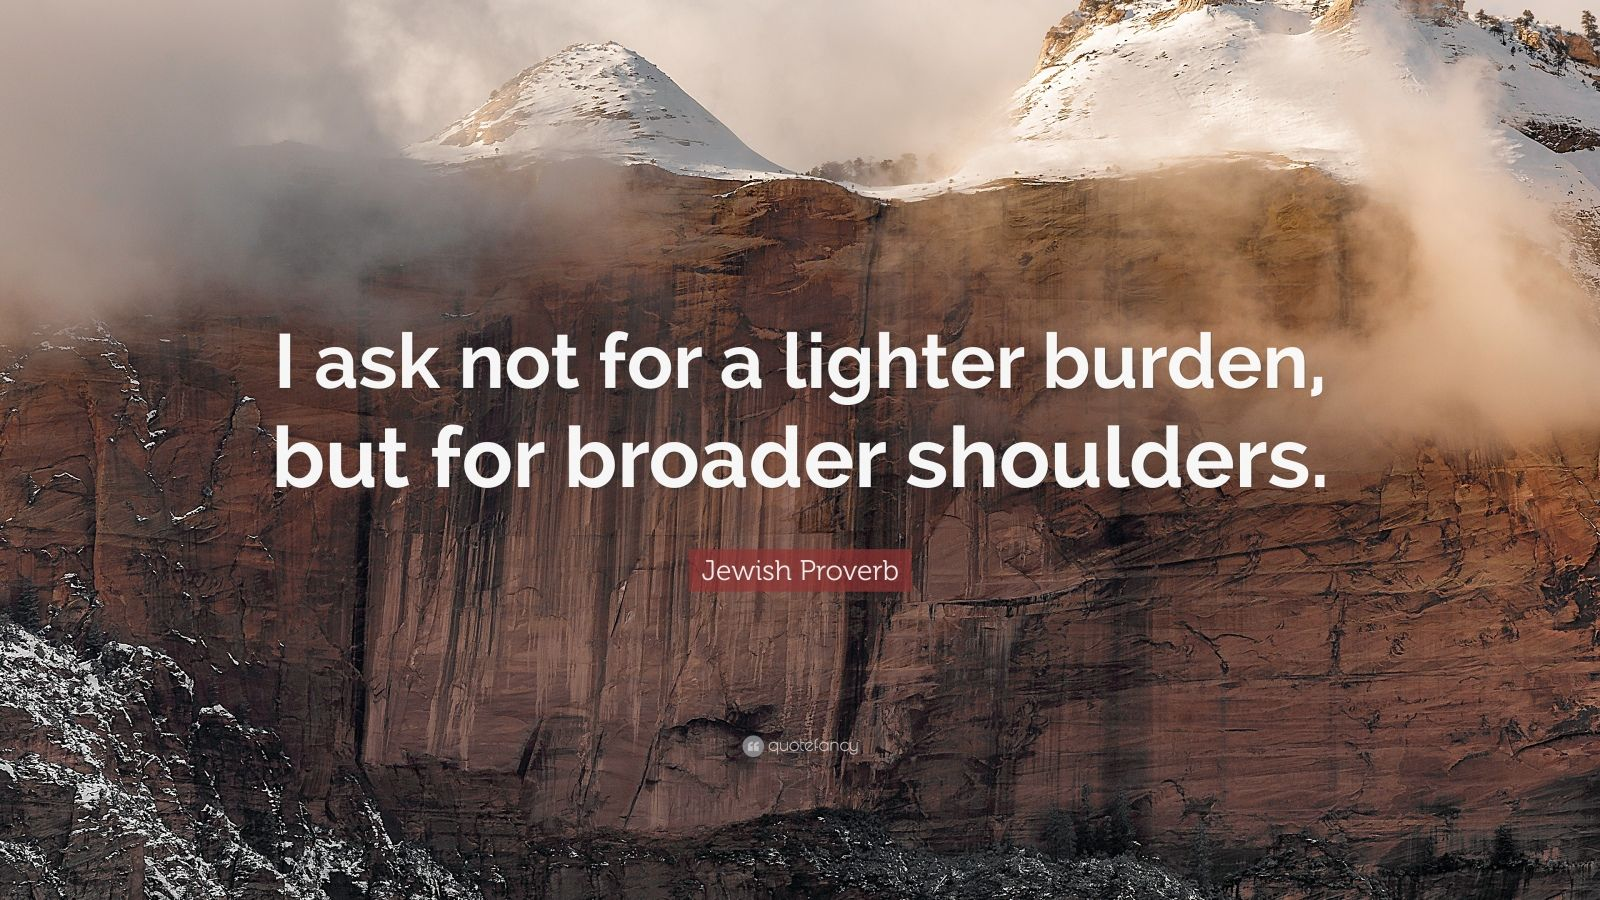 Motivating Quote Wallpaper Jewish Proverb Quote I Ask Not For A Lighter Burden But